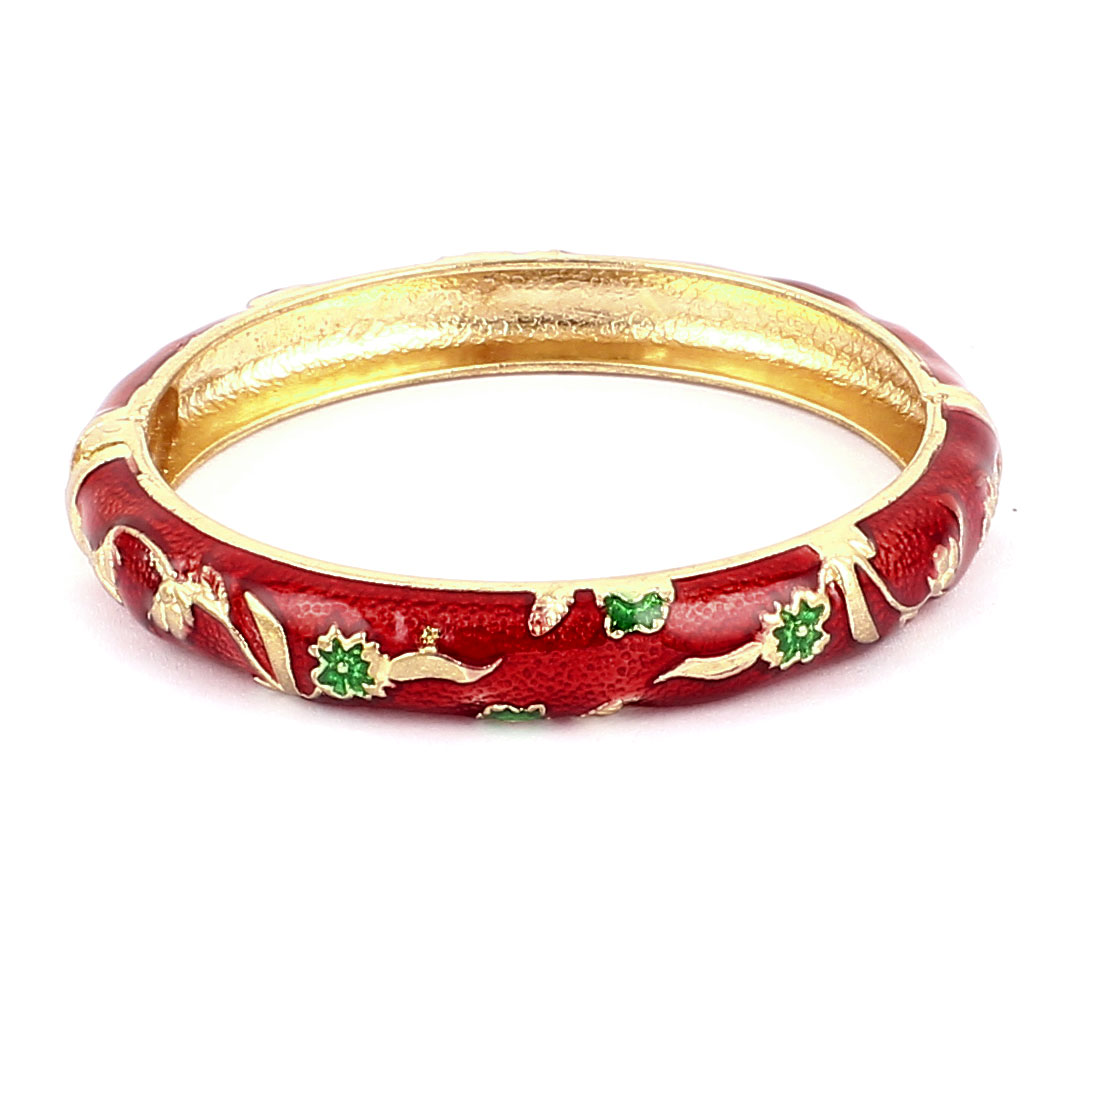 Woman Lady Spring Hinged Round Cuff Flower Design Enamel Bracelet Bangle Red